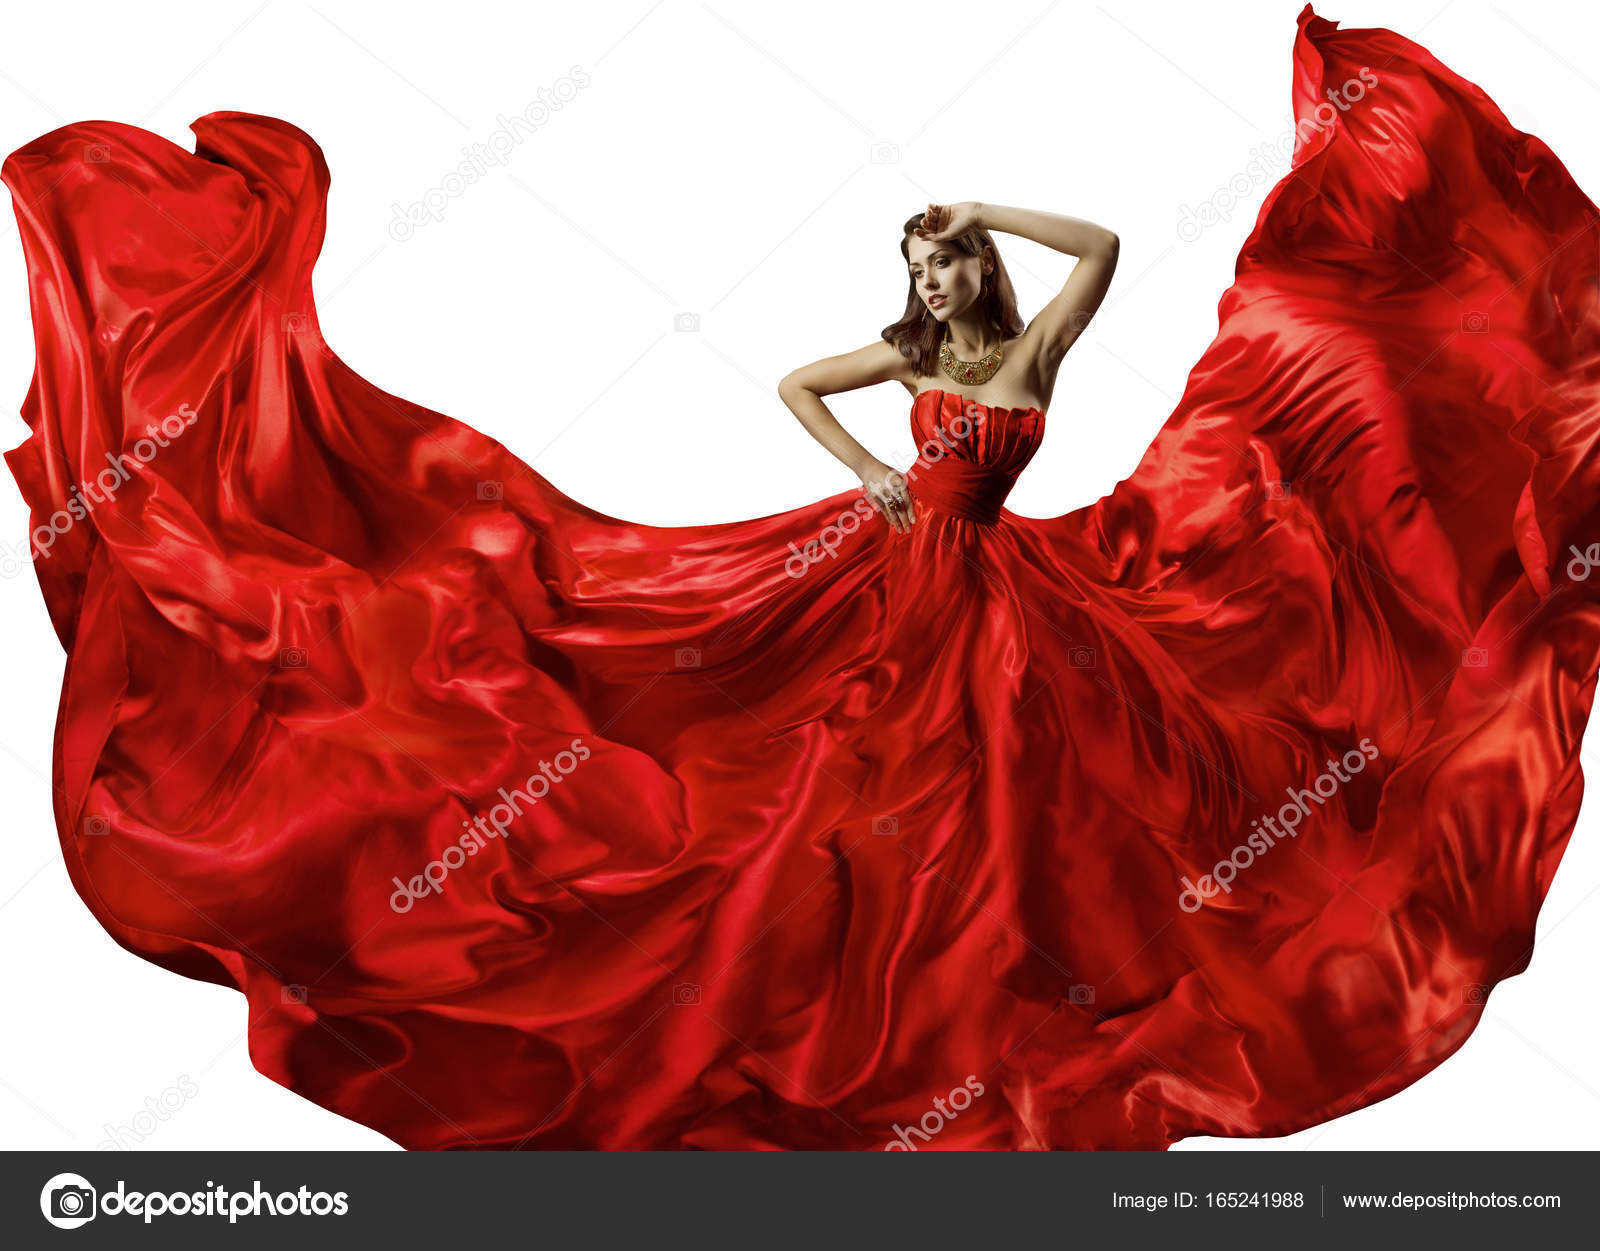 Dancing Woman in Red Dress, Fashion Model Dance in Silk Ball Gown ...